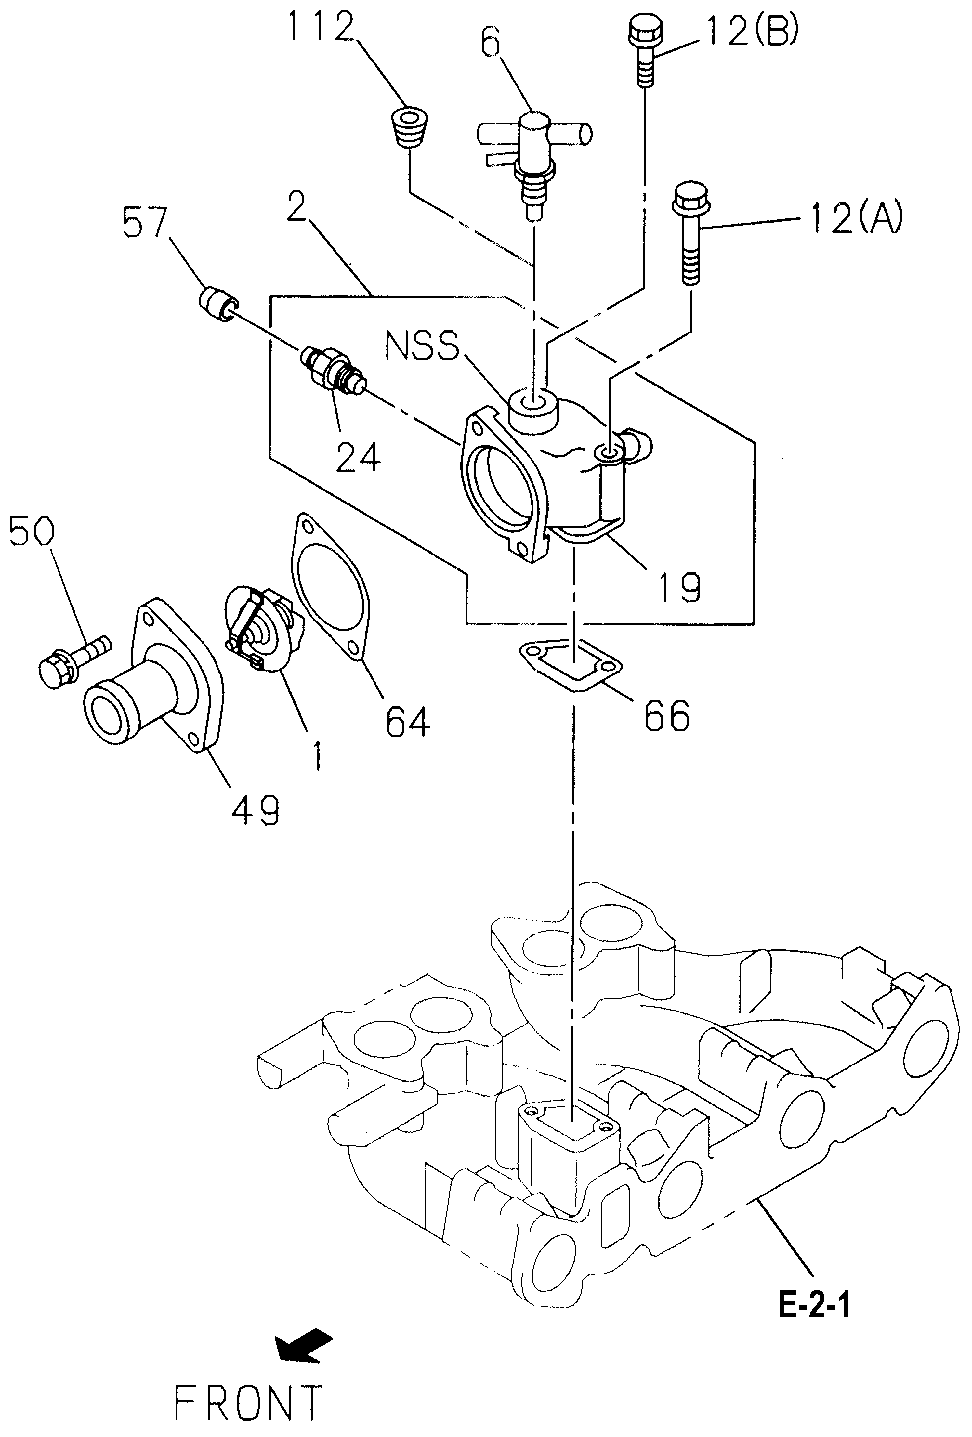 8-97108-164-0 - JOINT, WATER DUCT